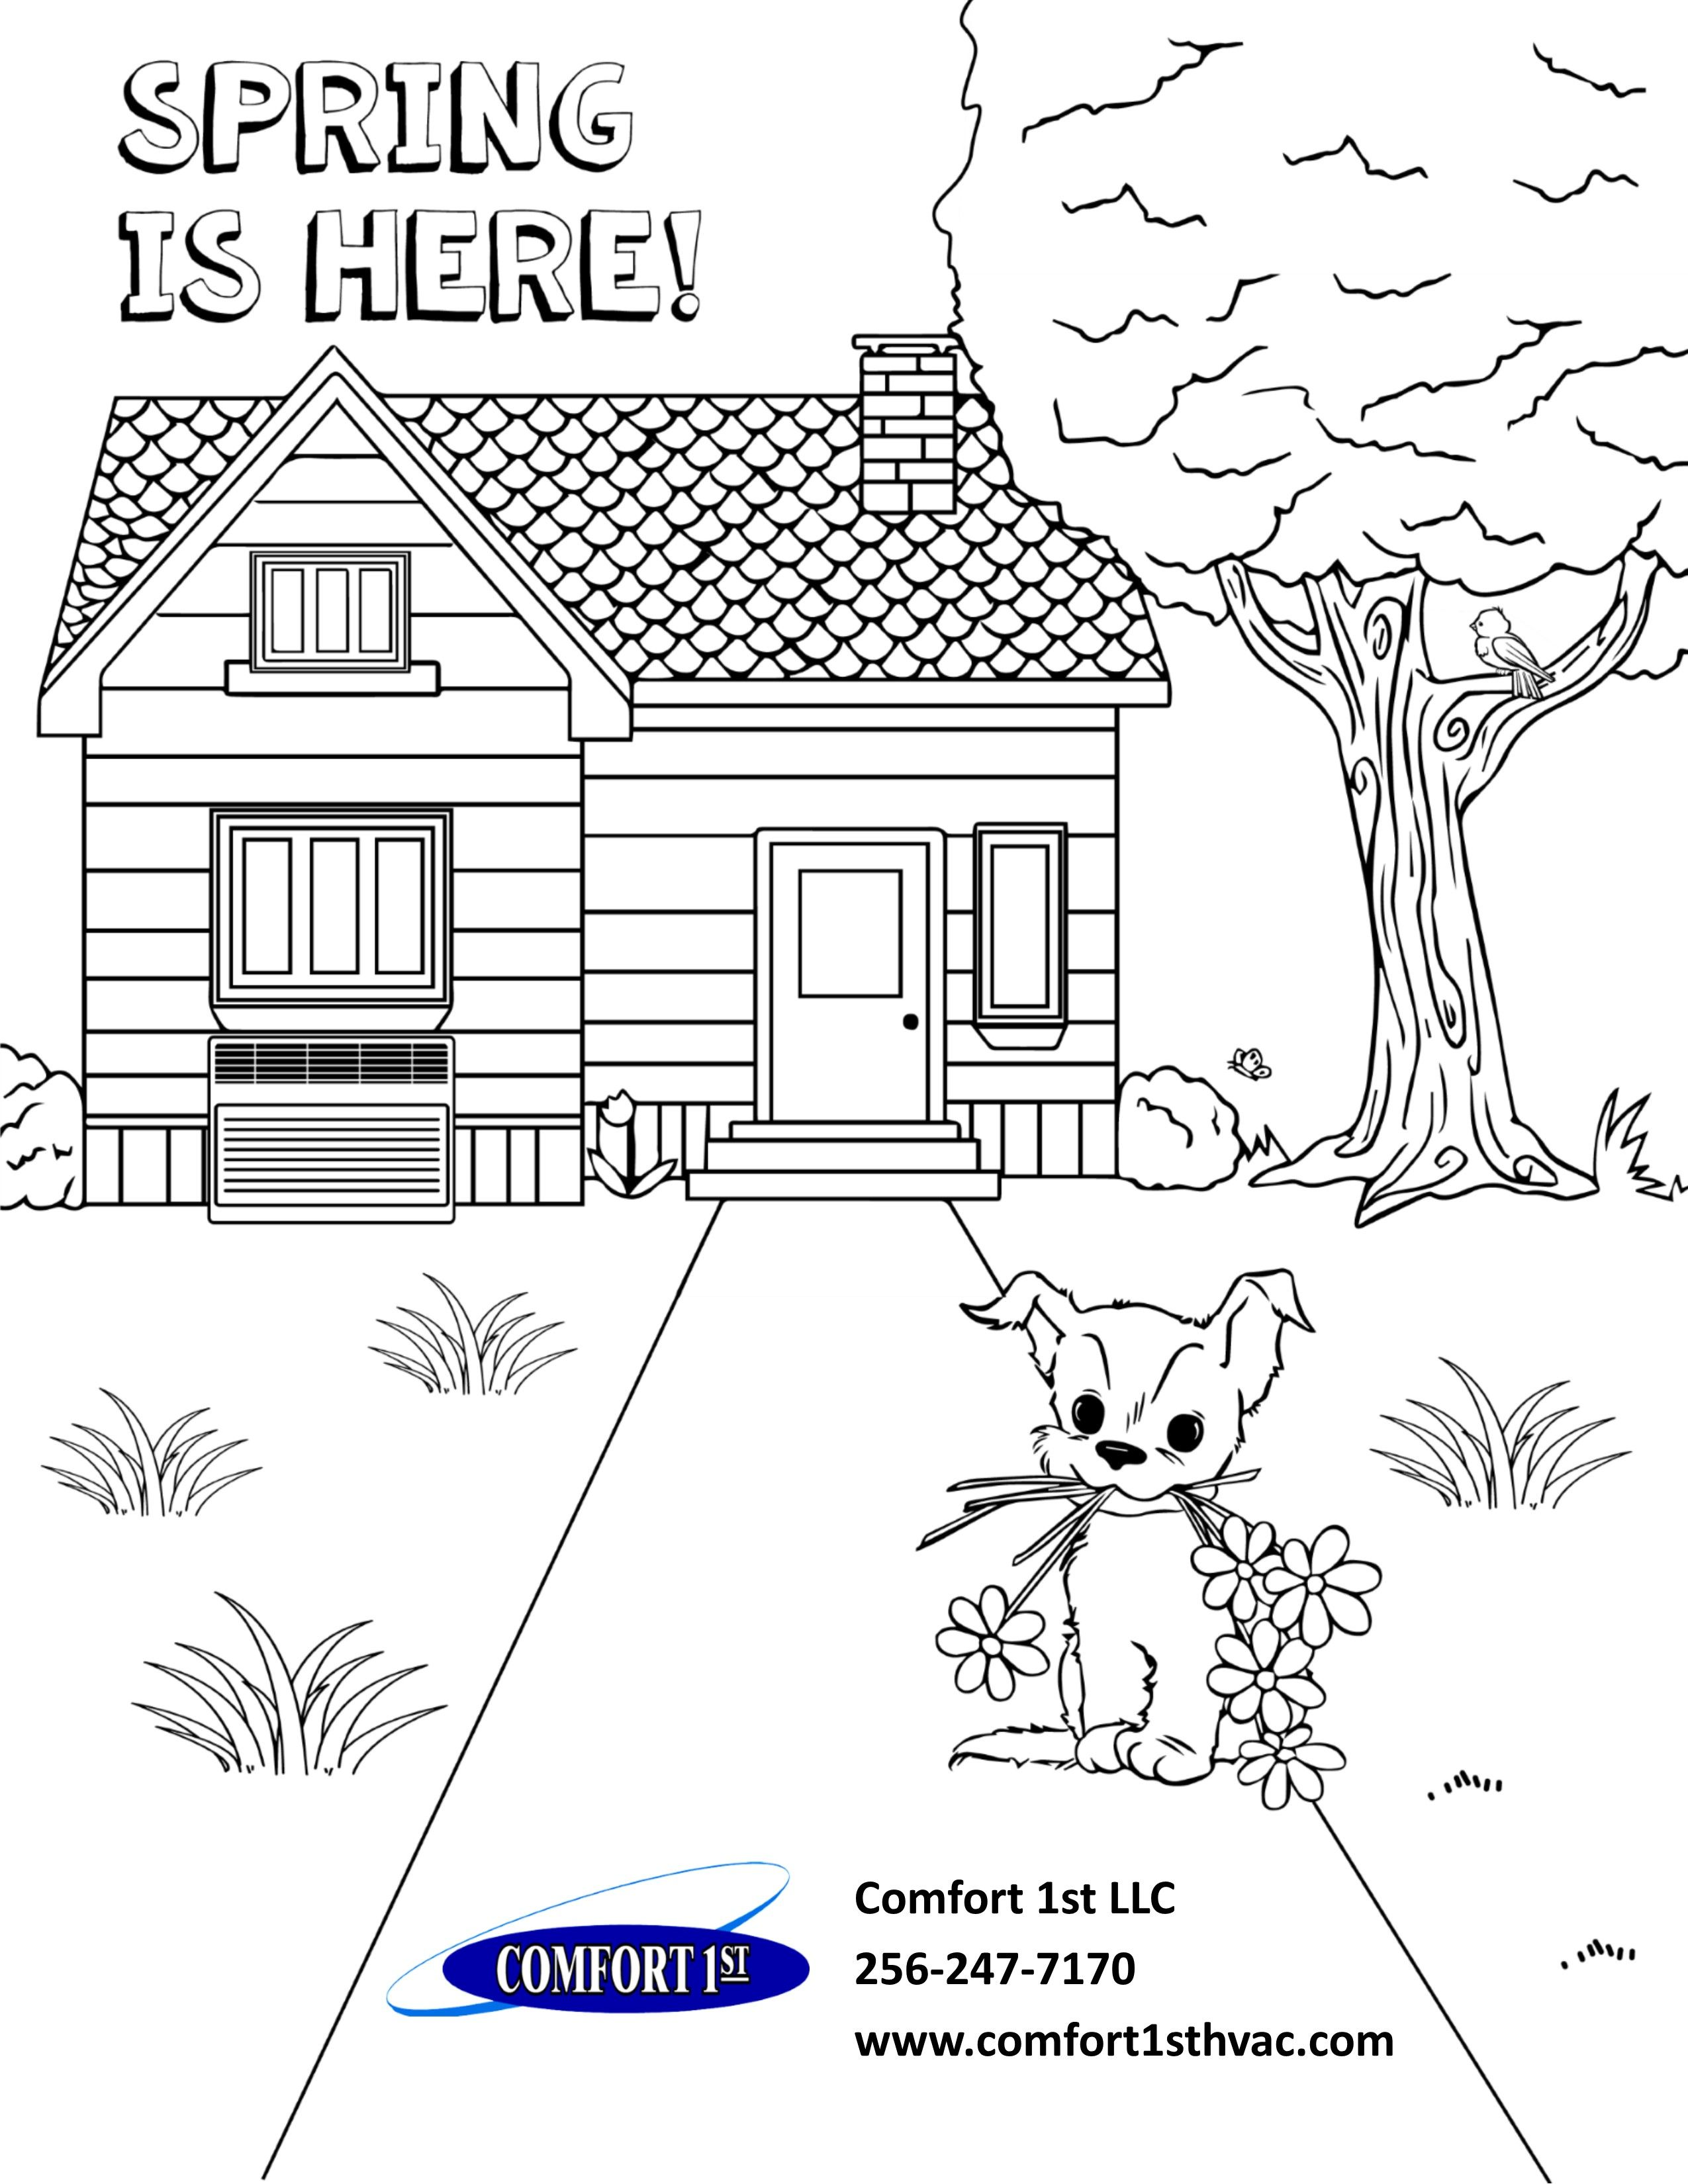 Spring is just around the corner! Print off this coloring